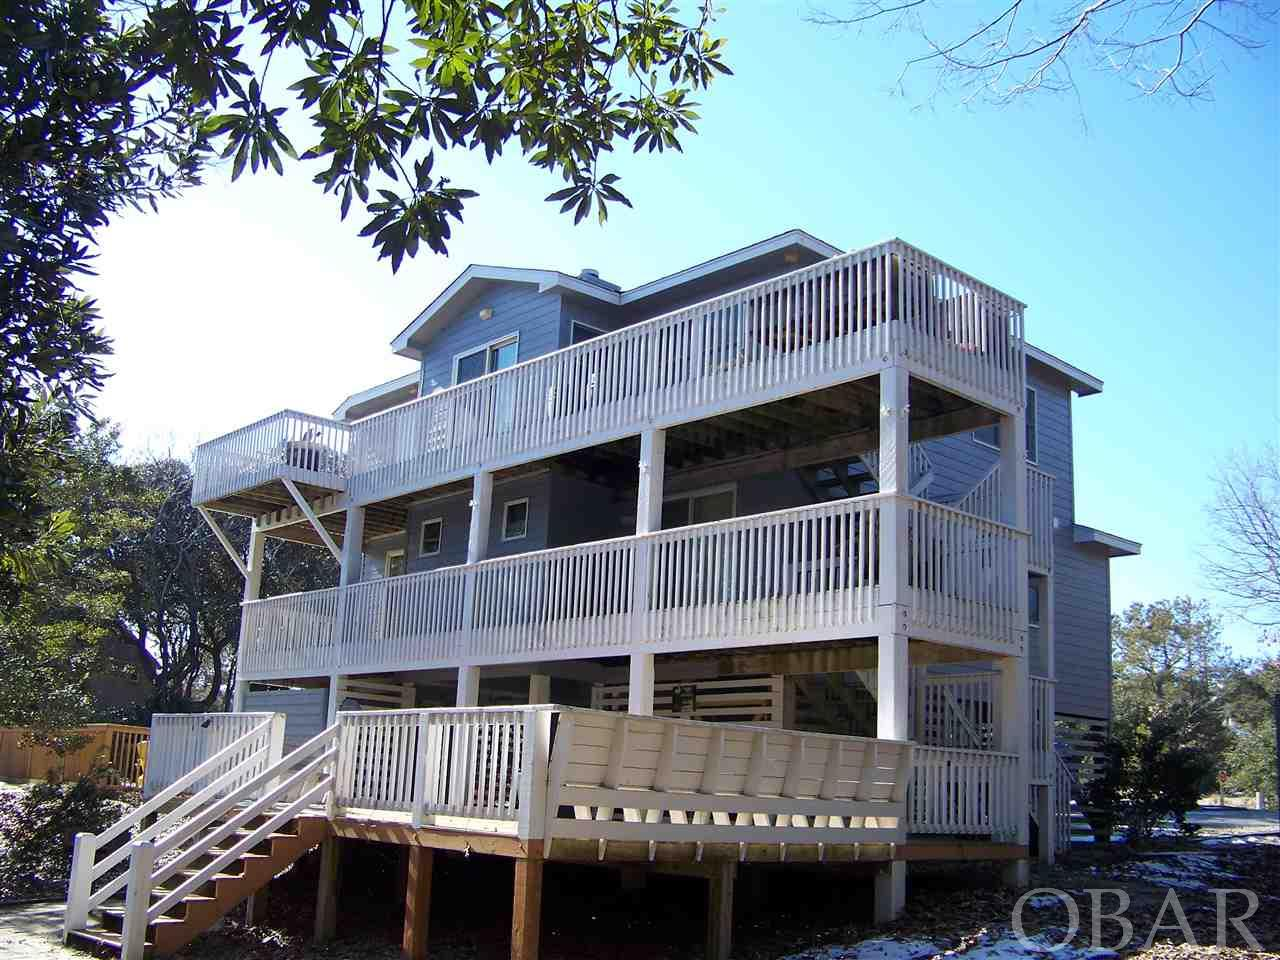 46 Spindrift Trail,Southern Shores,NC 27949,5 Bedrooms Bedrooms,4 BathroomsBathrooms,Residential,Spindrift Trail,98971